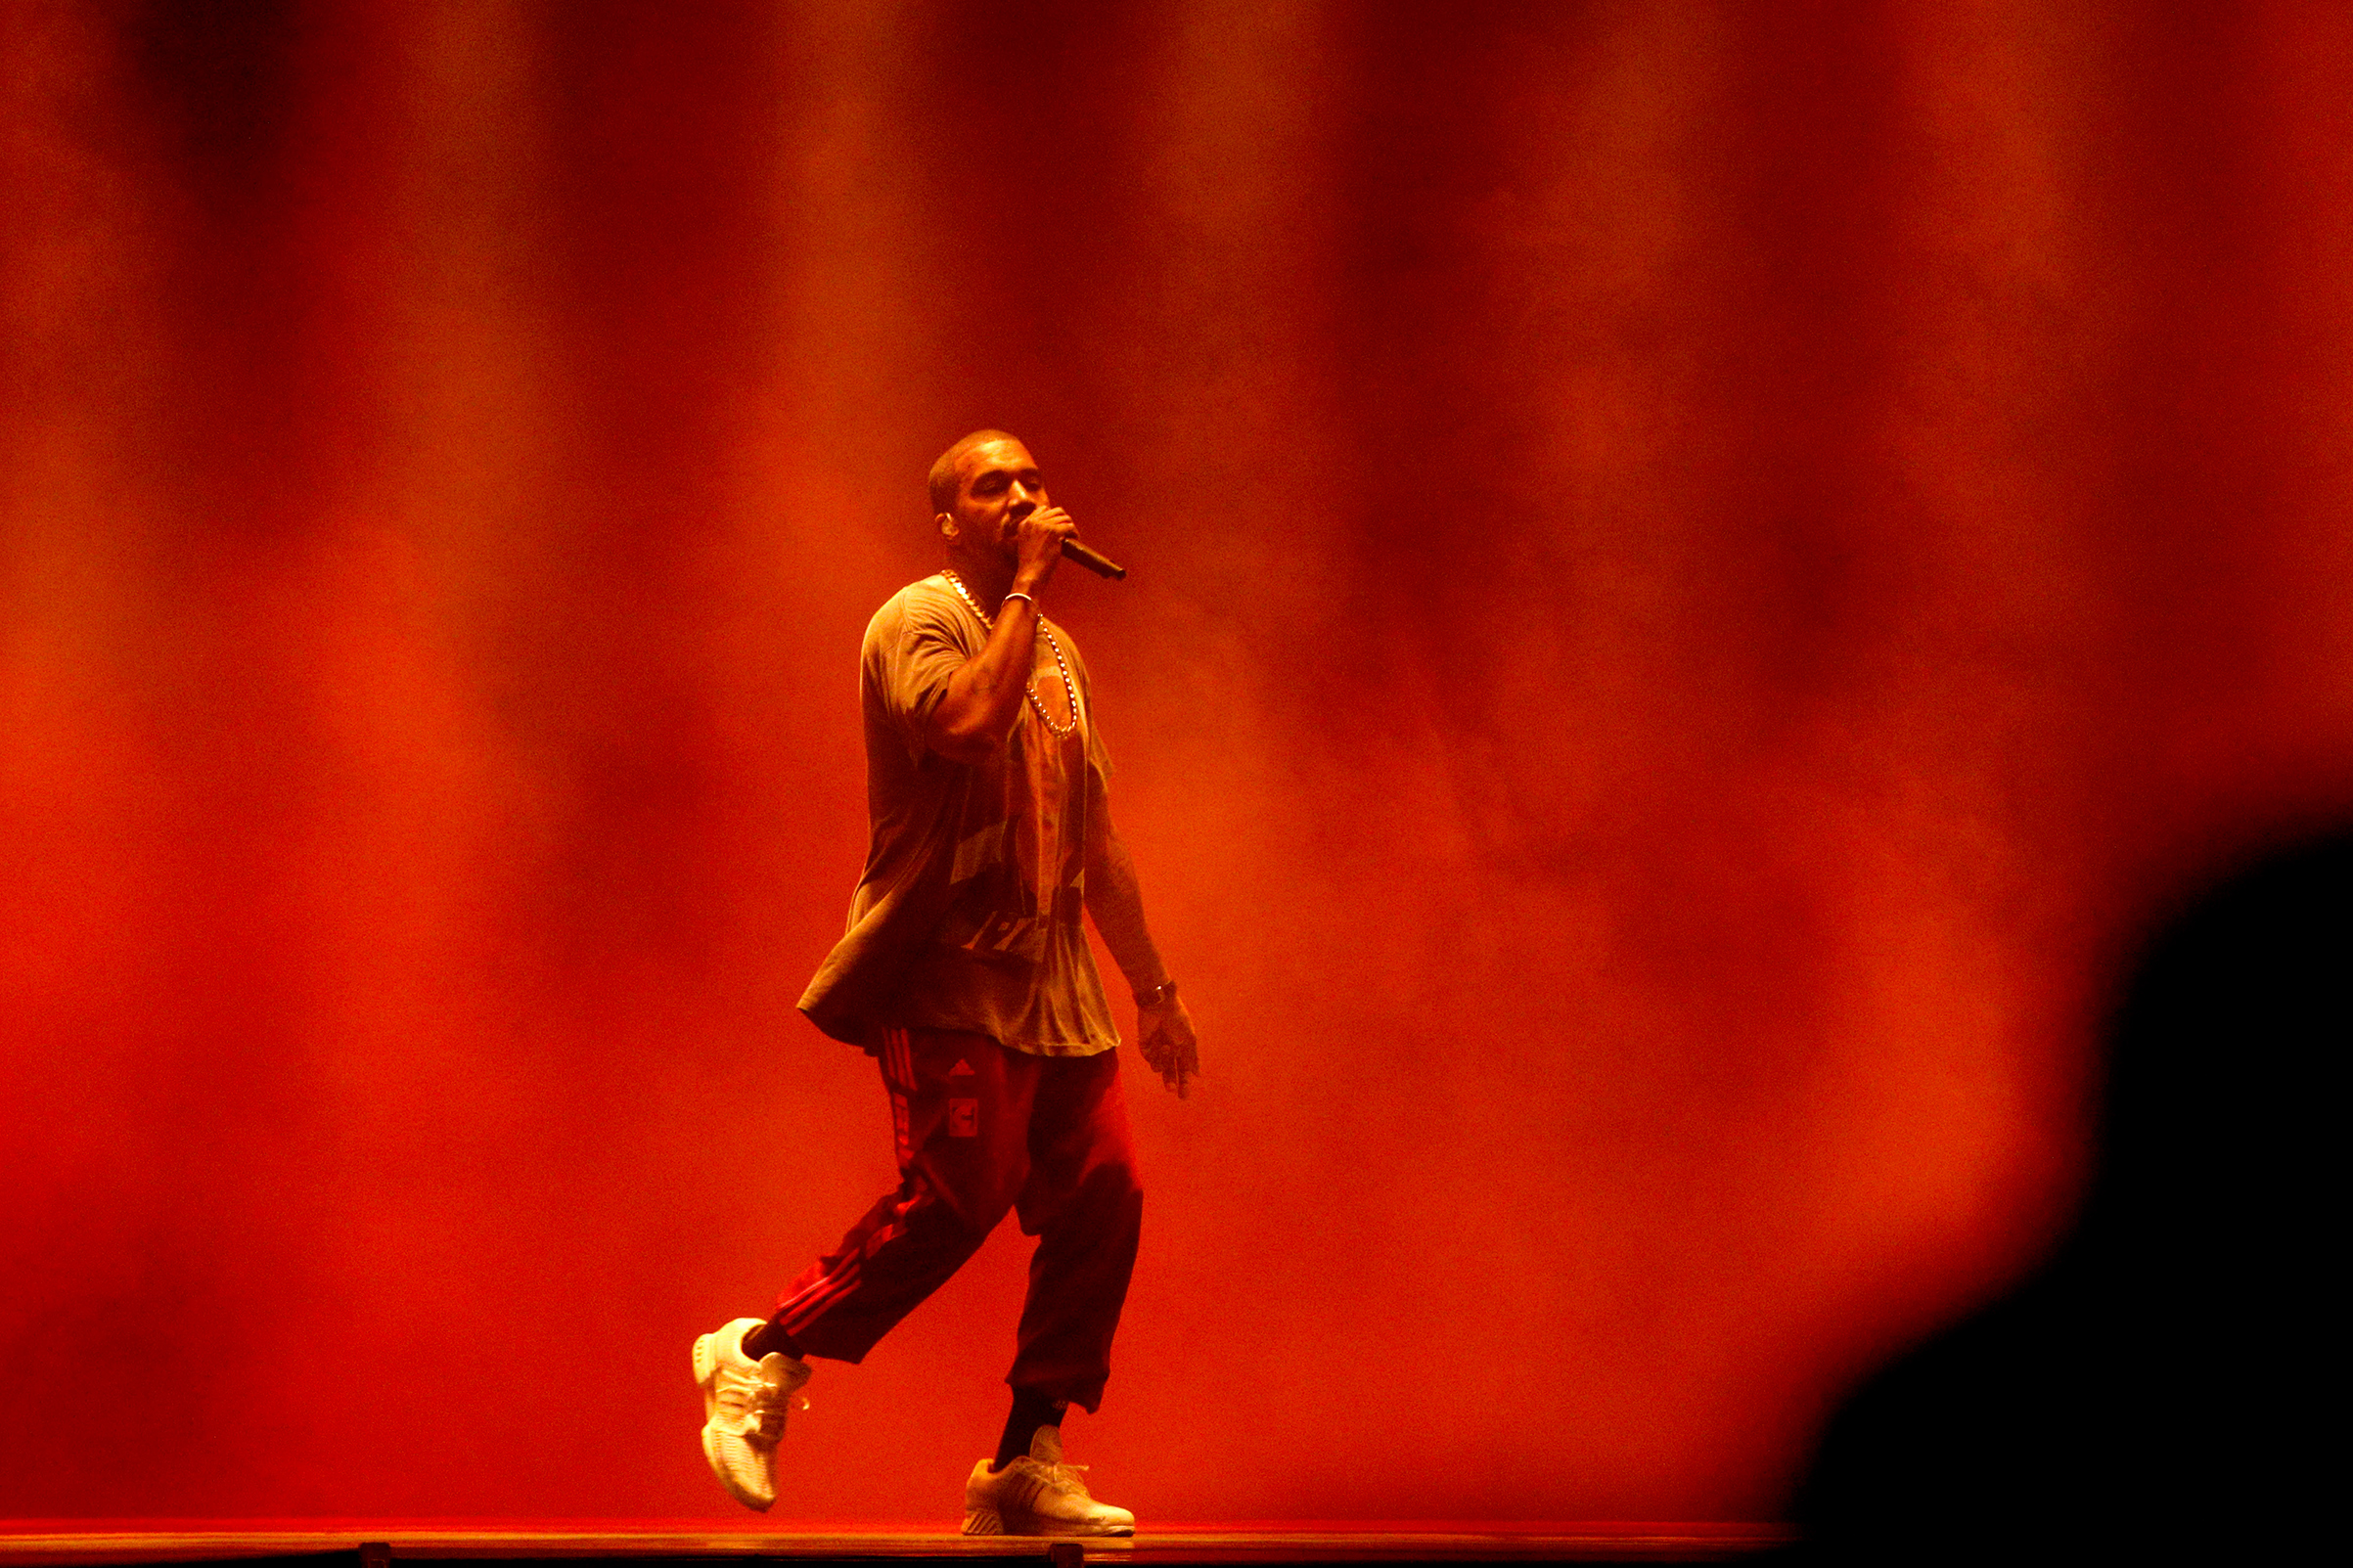 Kanye West performs onstage during The Meadows Music & Arts Festival on Oct. 2, 2016 in New York.